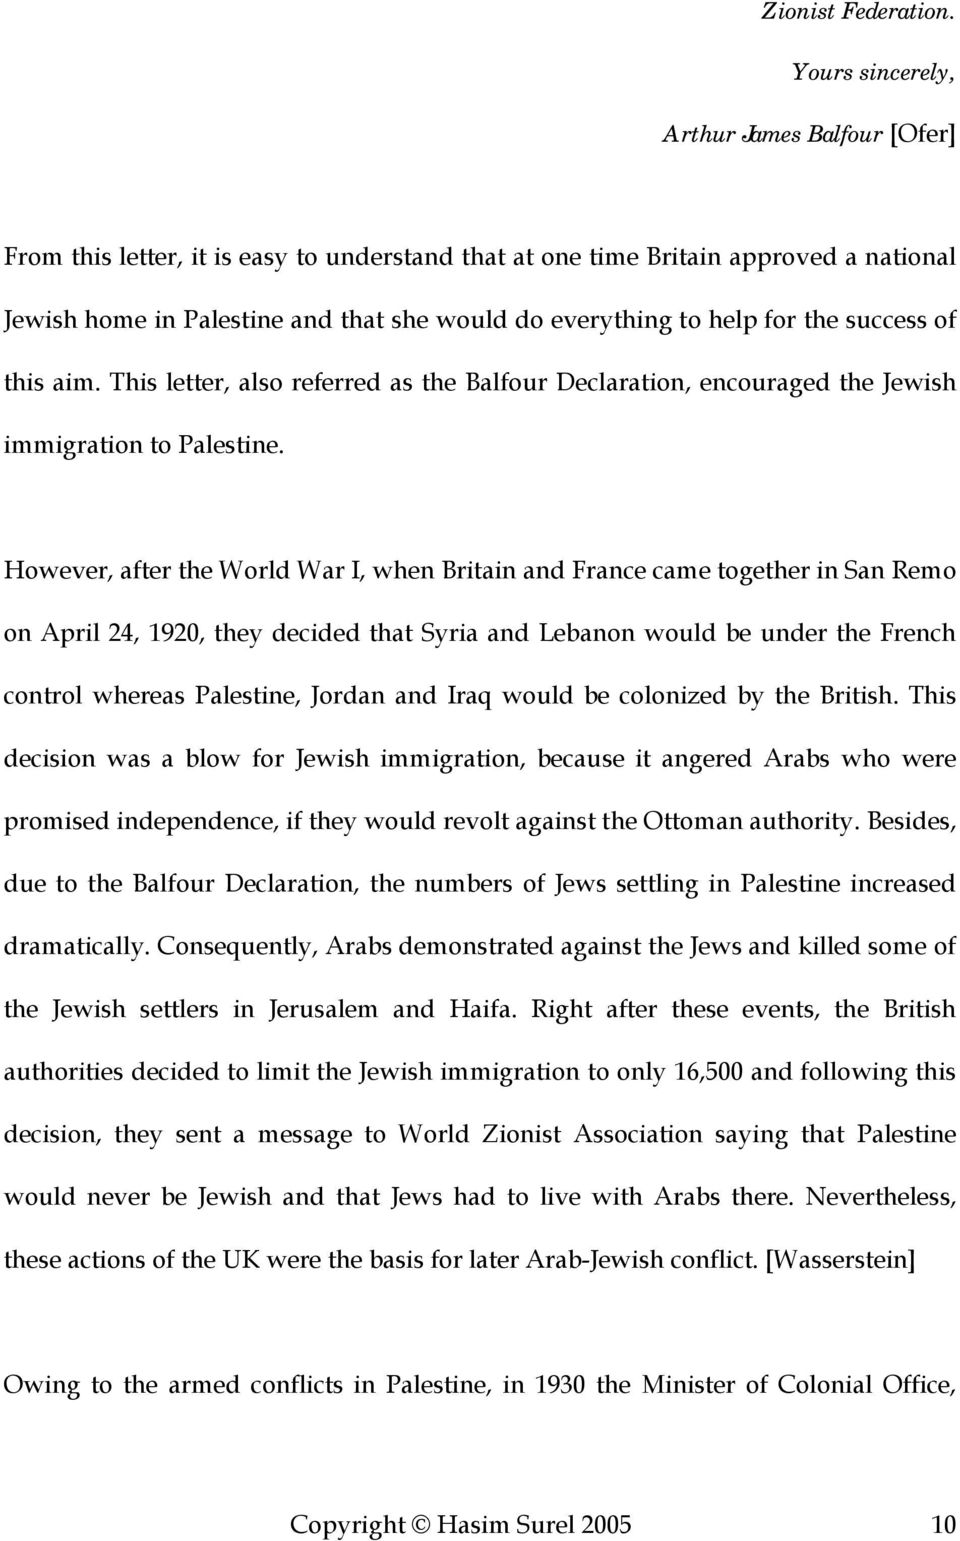 for the success of this aim. This letter, also referred as the Balfour Declaration, encouraged the Jewish immigration to Palestine.